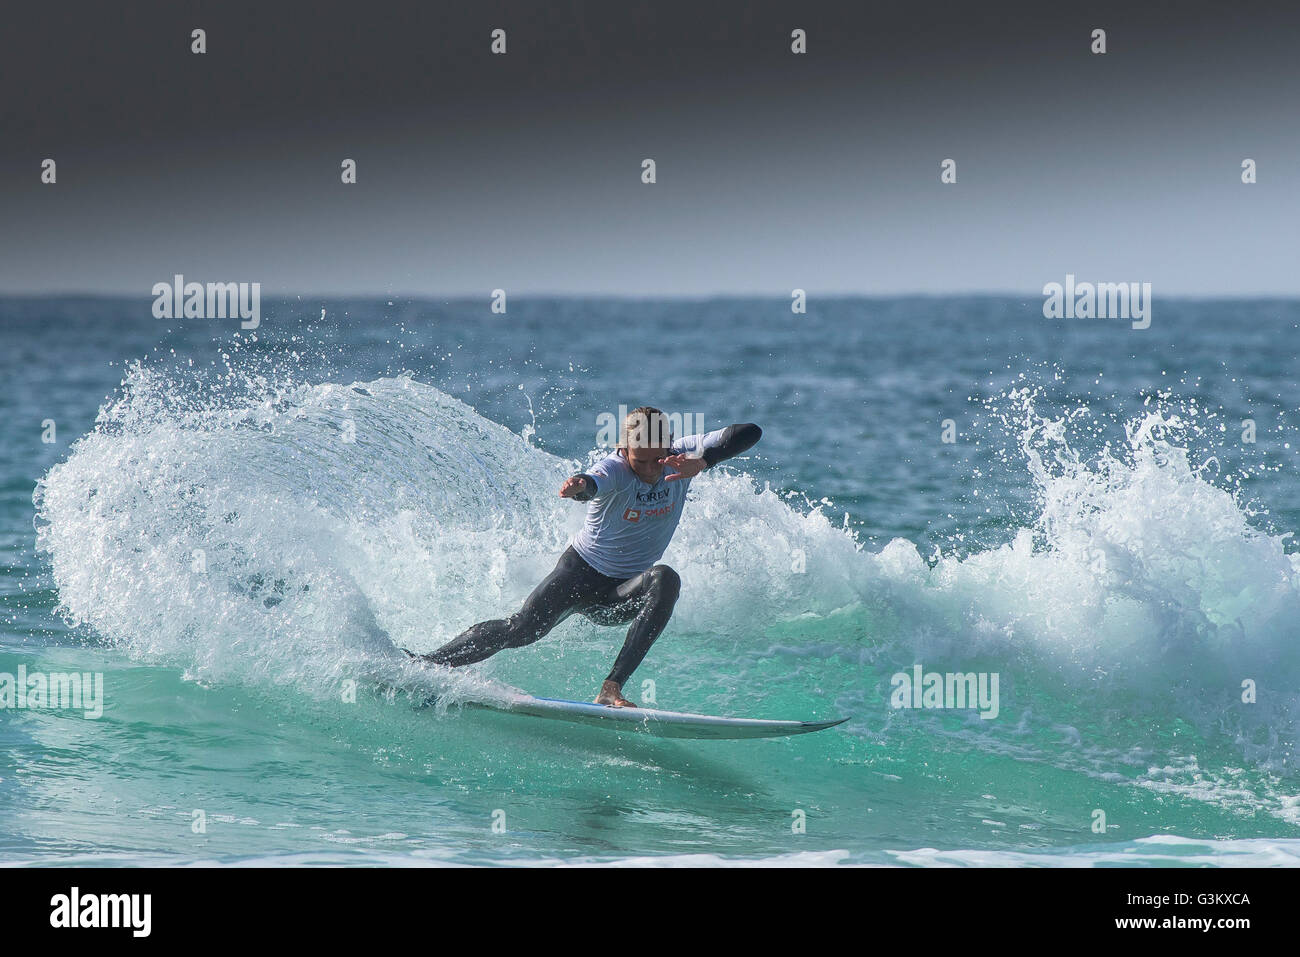 A surfer in spectacular action as he competes in a UK Pro Surf Tour competition at Fistral in Newquay, Cornwall. - Stock Image